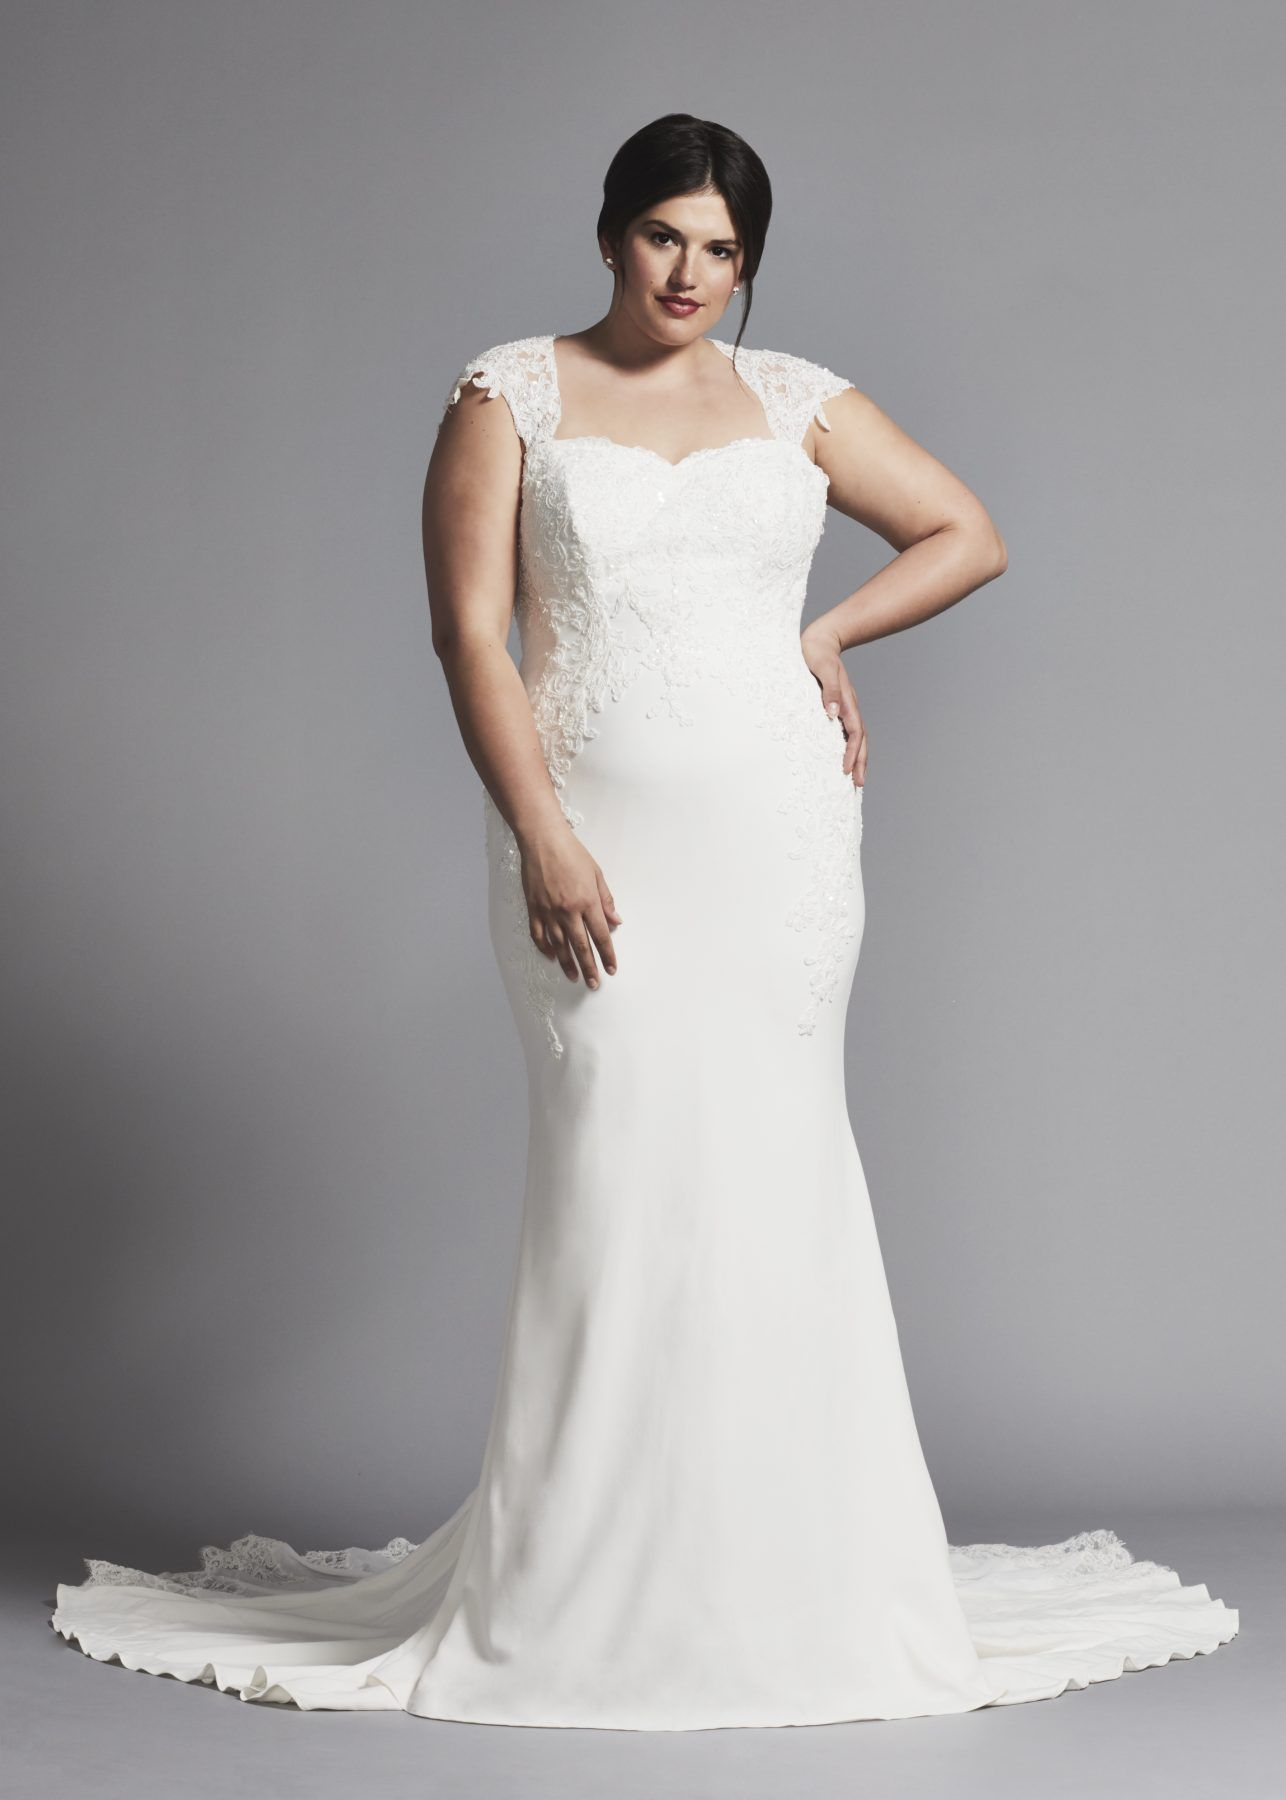 Cap Sleeve Sweetheart Neckline Crepe Sheath Wedding Dress With Beaded Lace Appliques At Neckline Wedding Dresses Plus Wedding Dresses Plus Size Bridal Dresses